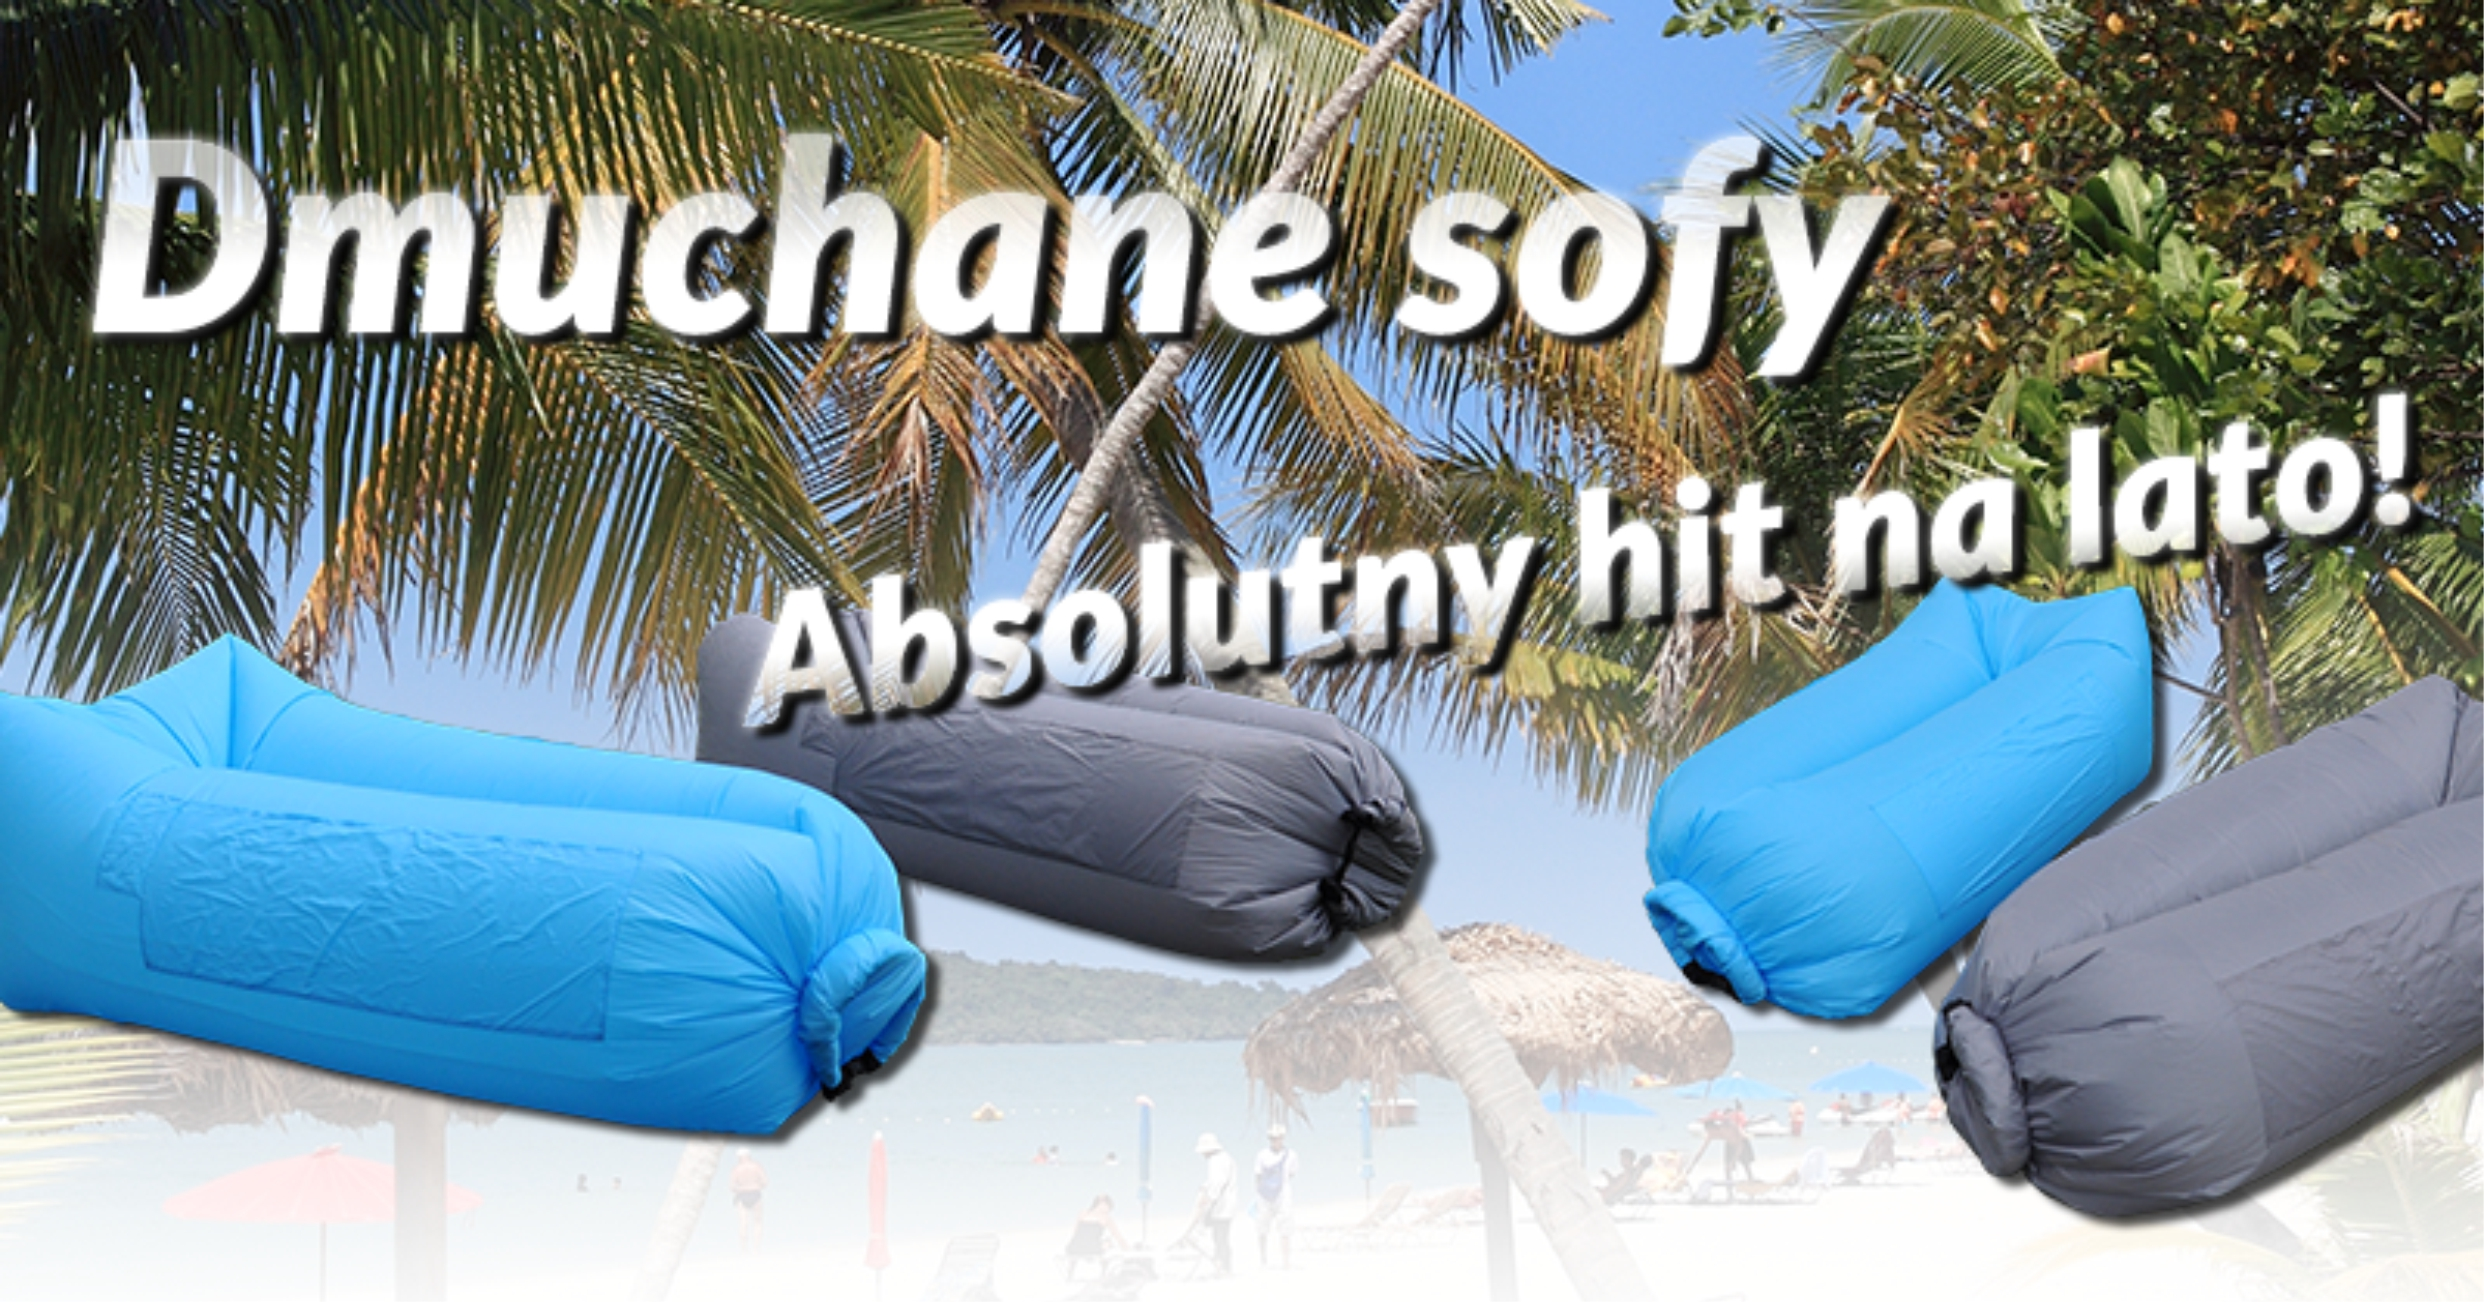 dmuchane sofy lazy bag